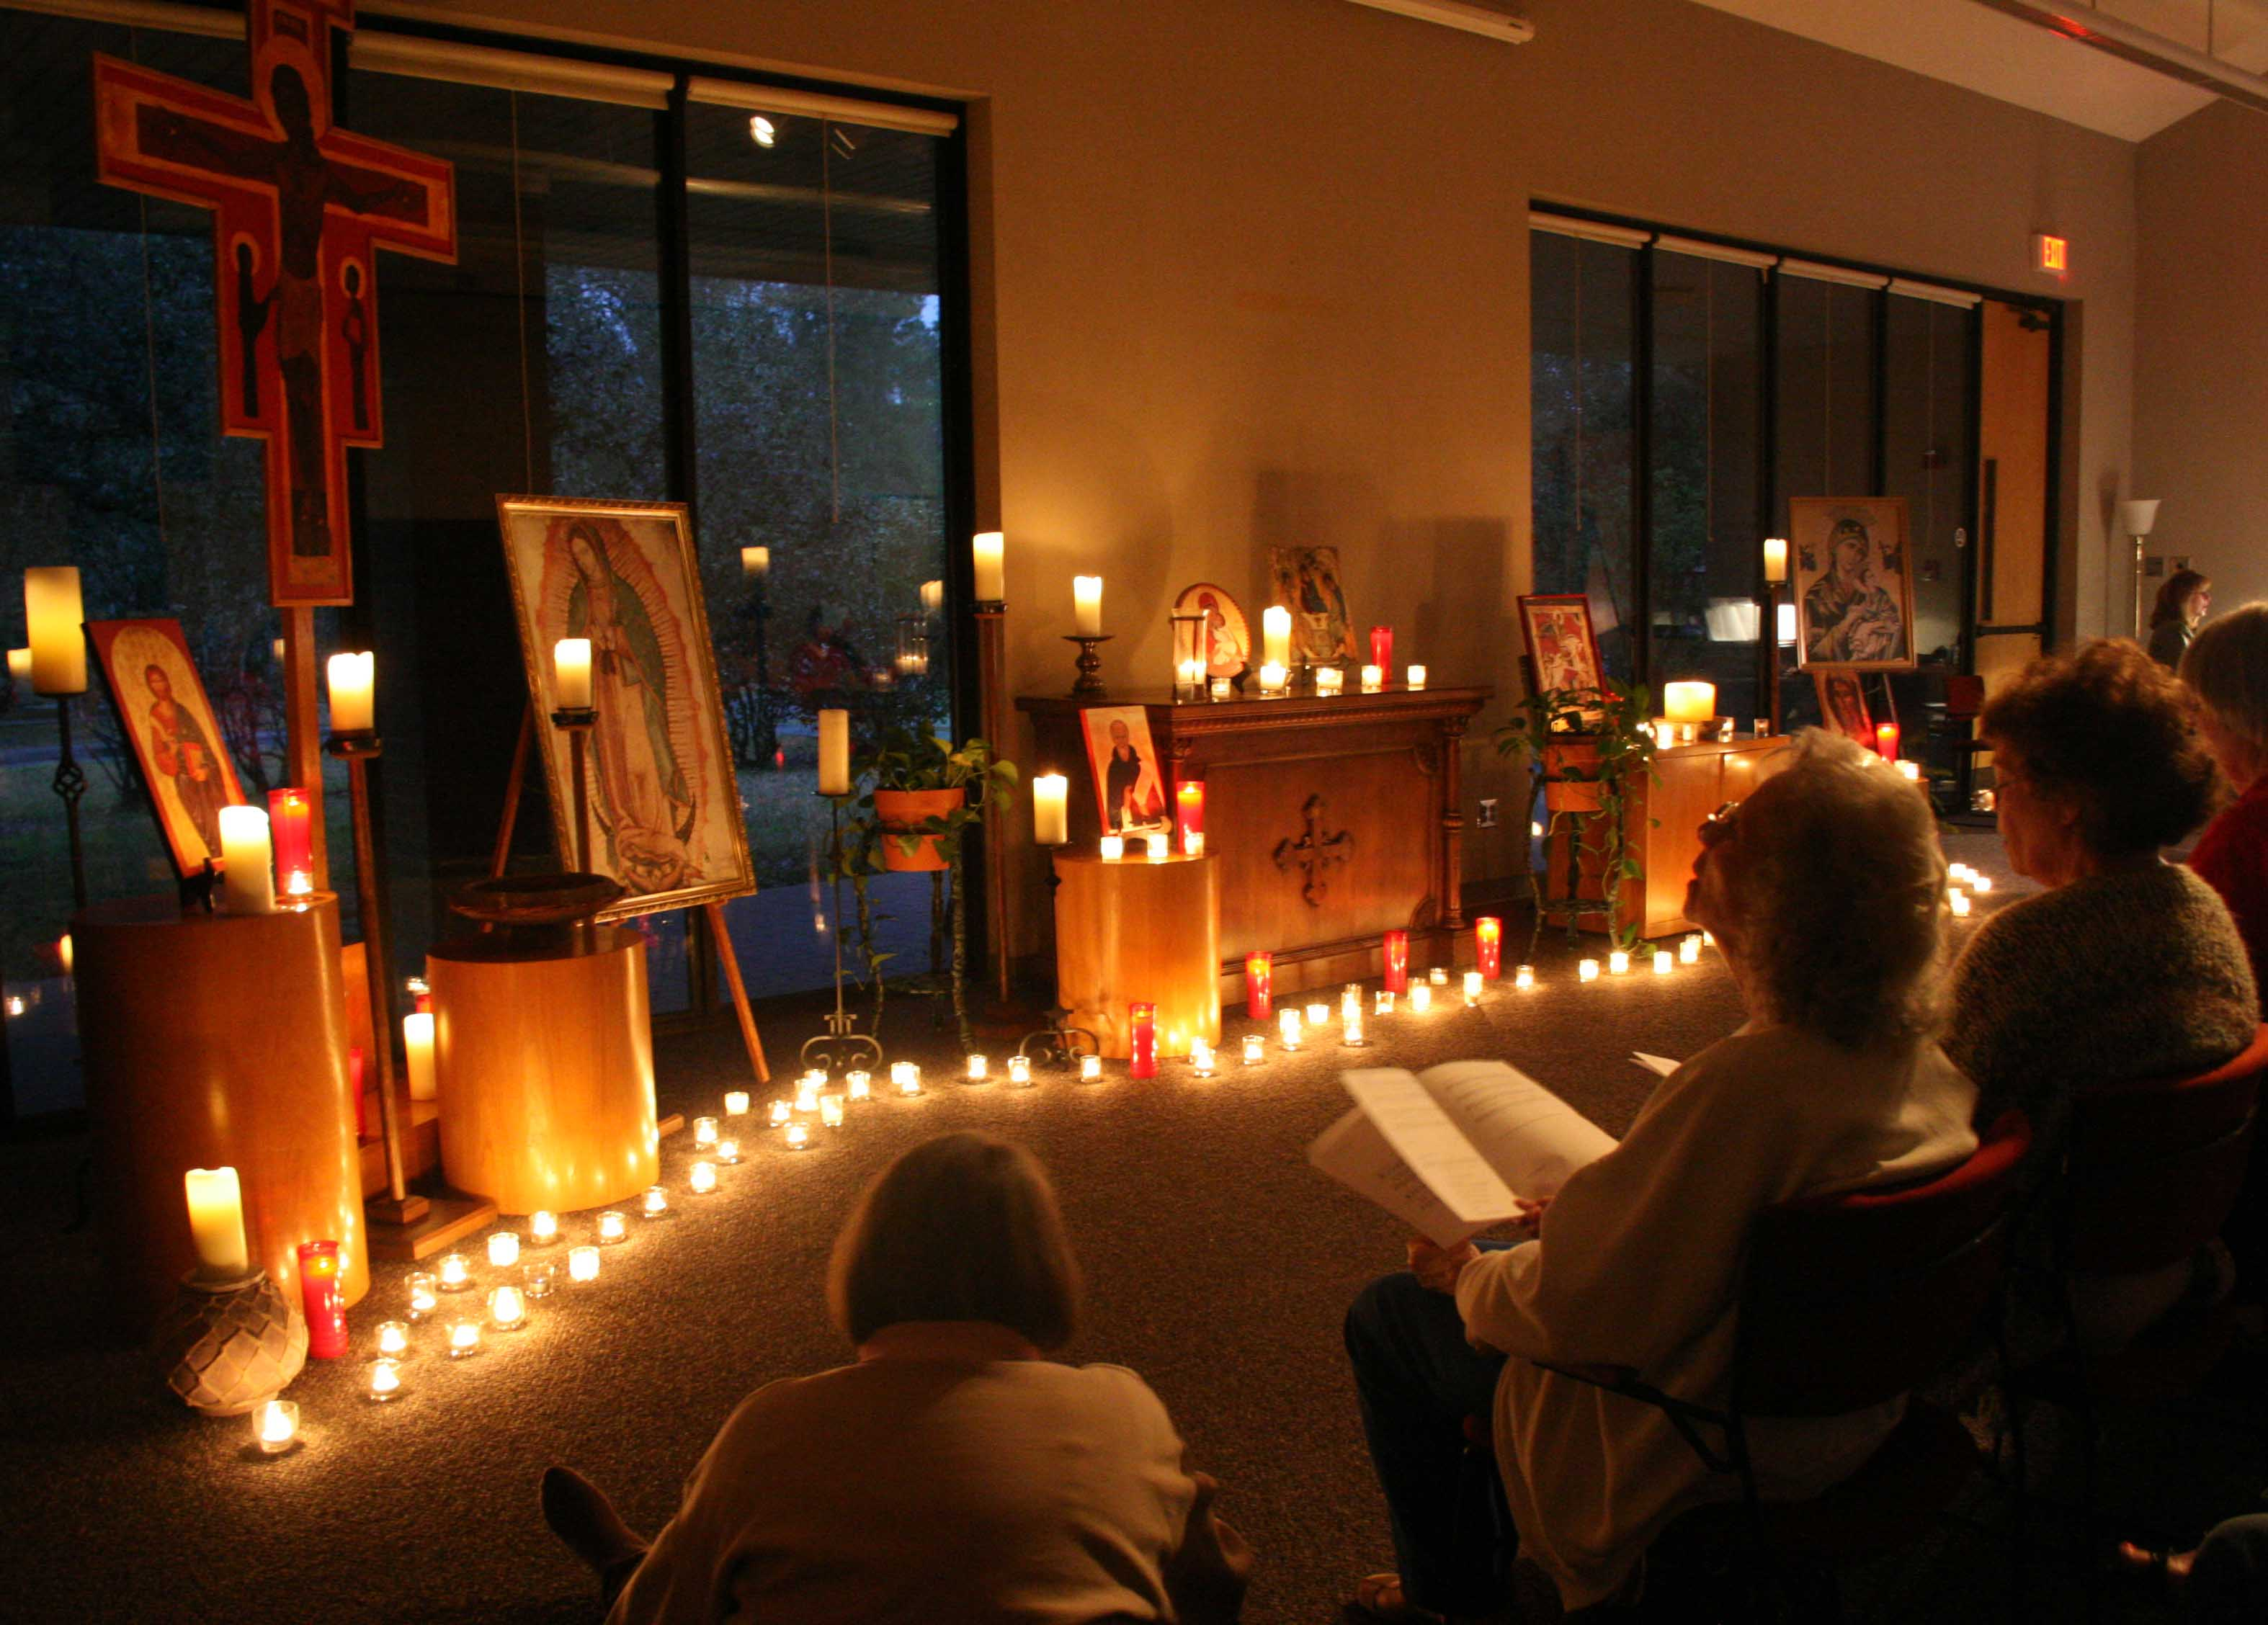 Retreat center brings in a taste of French meditation | East Texas Catholic